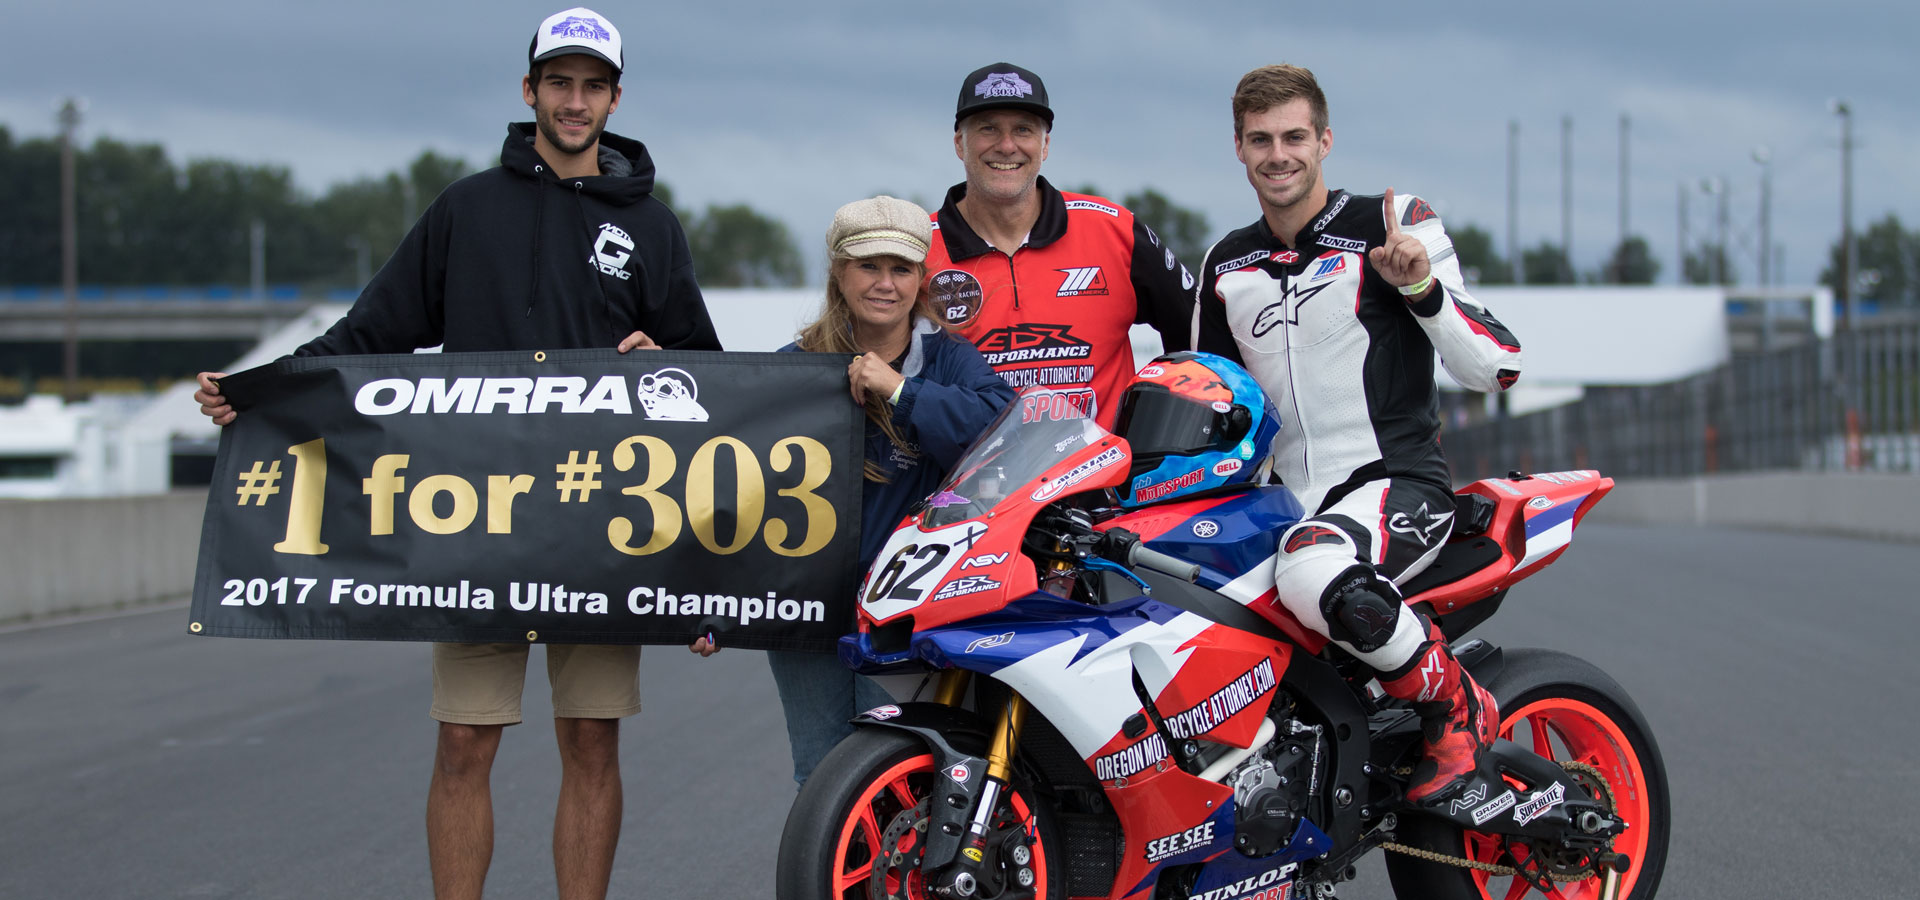 Andy with his family and friend Devon Formula Ultra champ for #303 Kelly Johnson